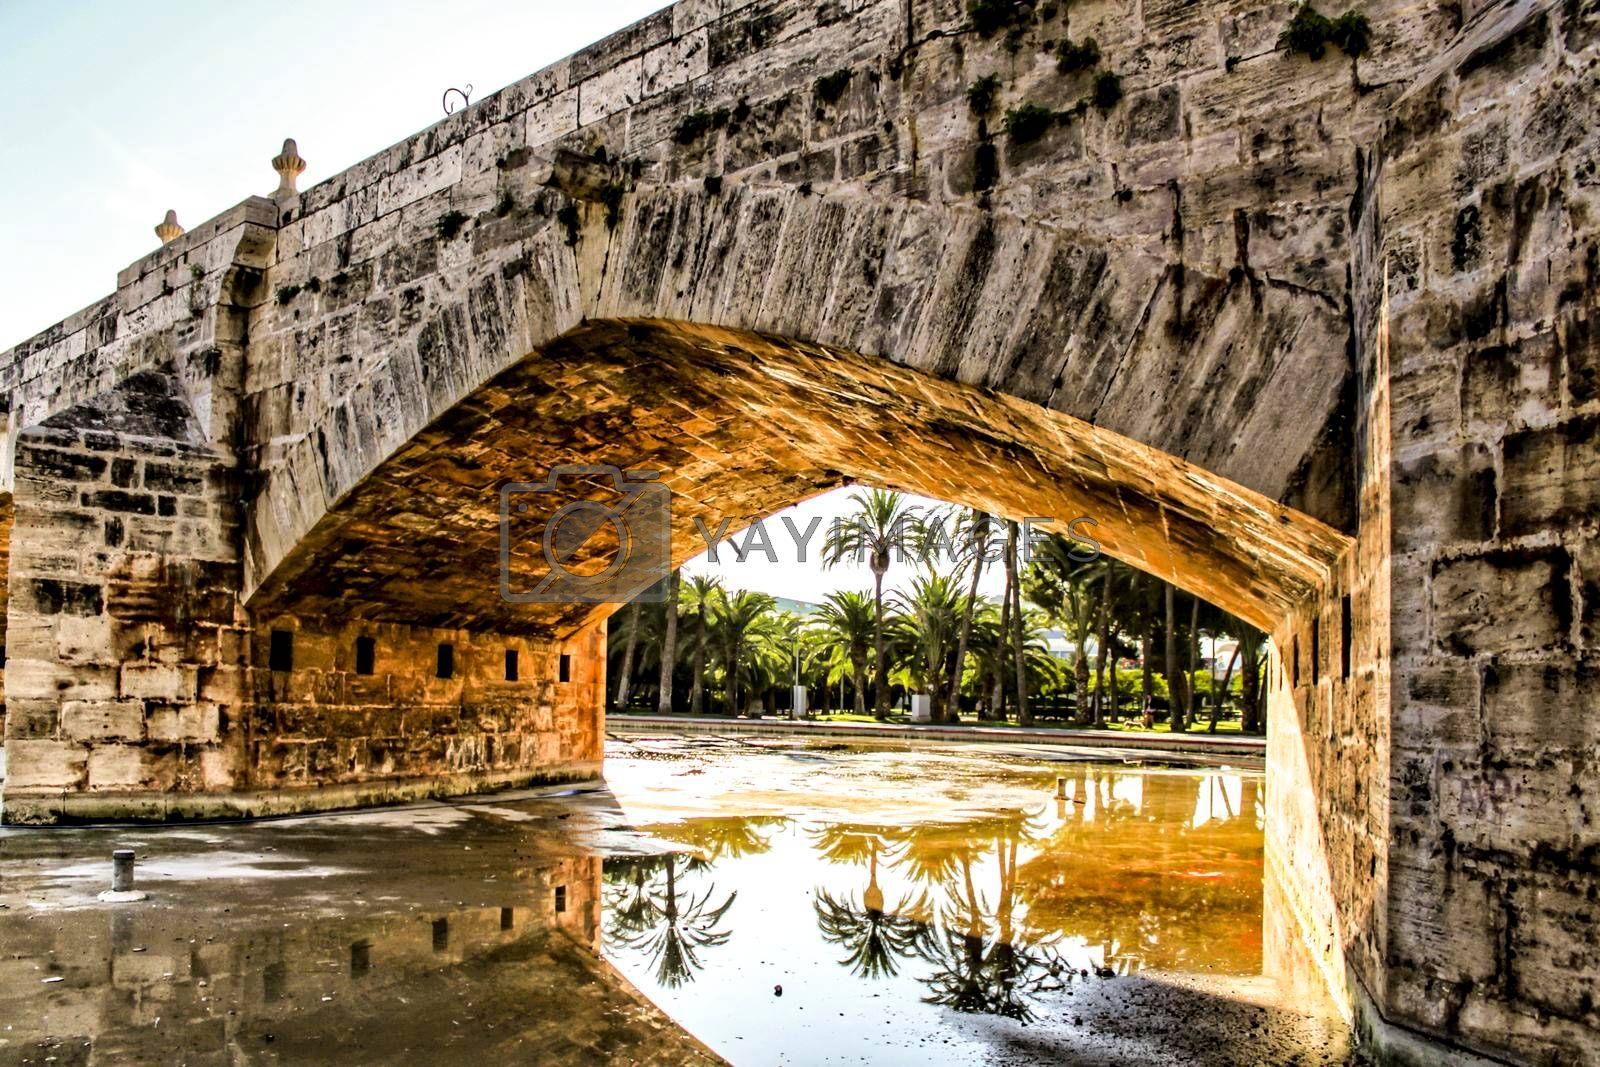 Old Stone bridge and reflections in a park puddle in Valencia